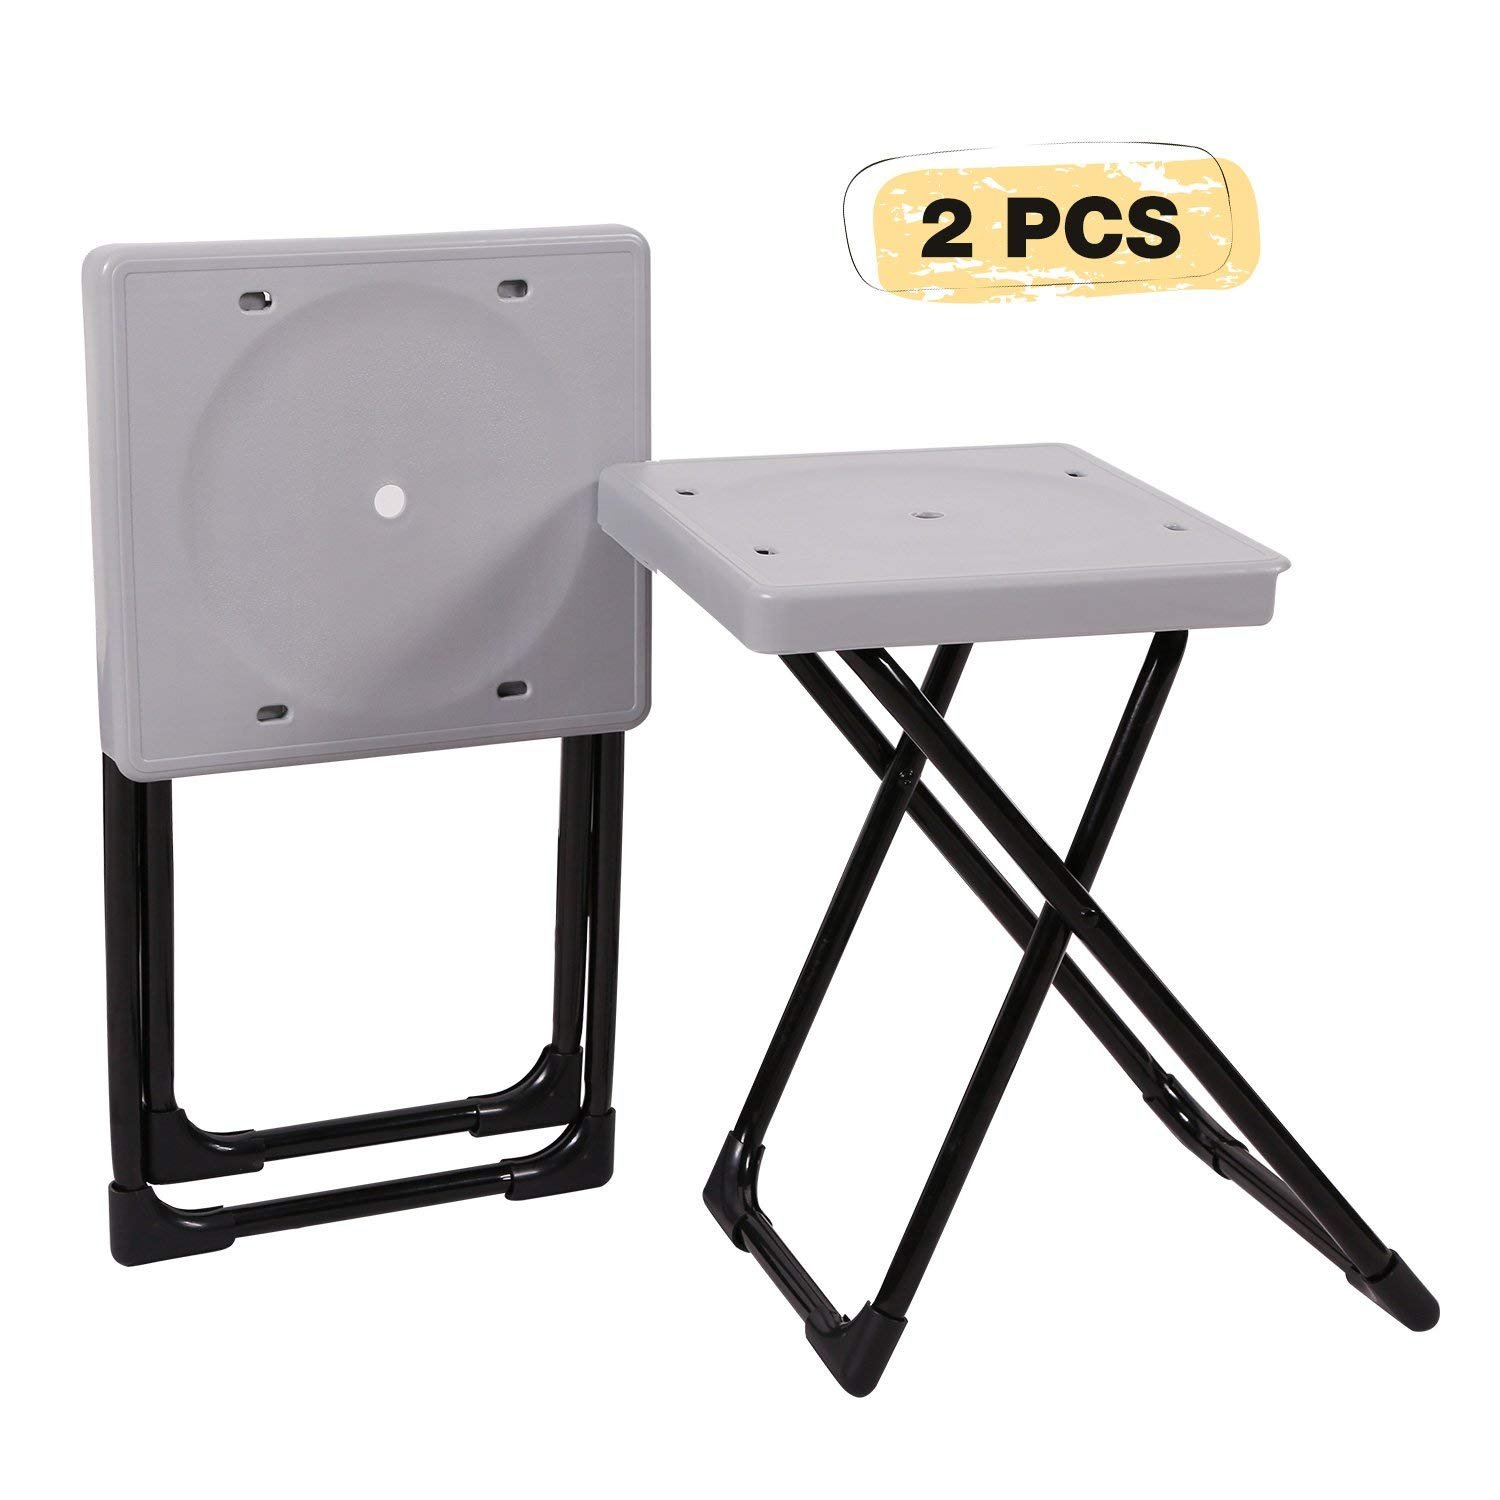 REDCAMP Folding Camp Stool Portable, Set of 2, Lightweight Camping Stools Plastic with Durable Steel Frame Legs, 15''